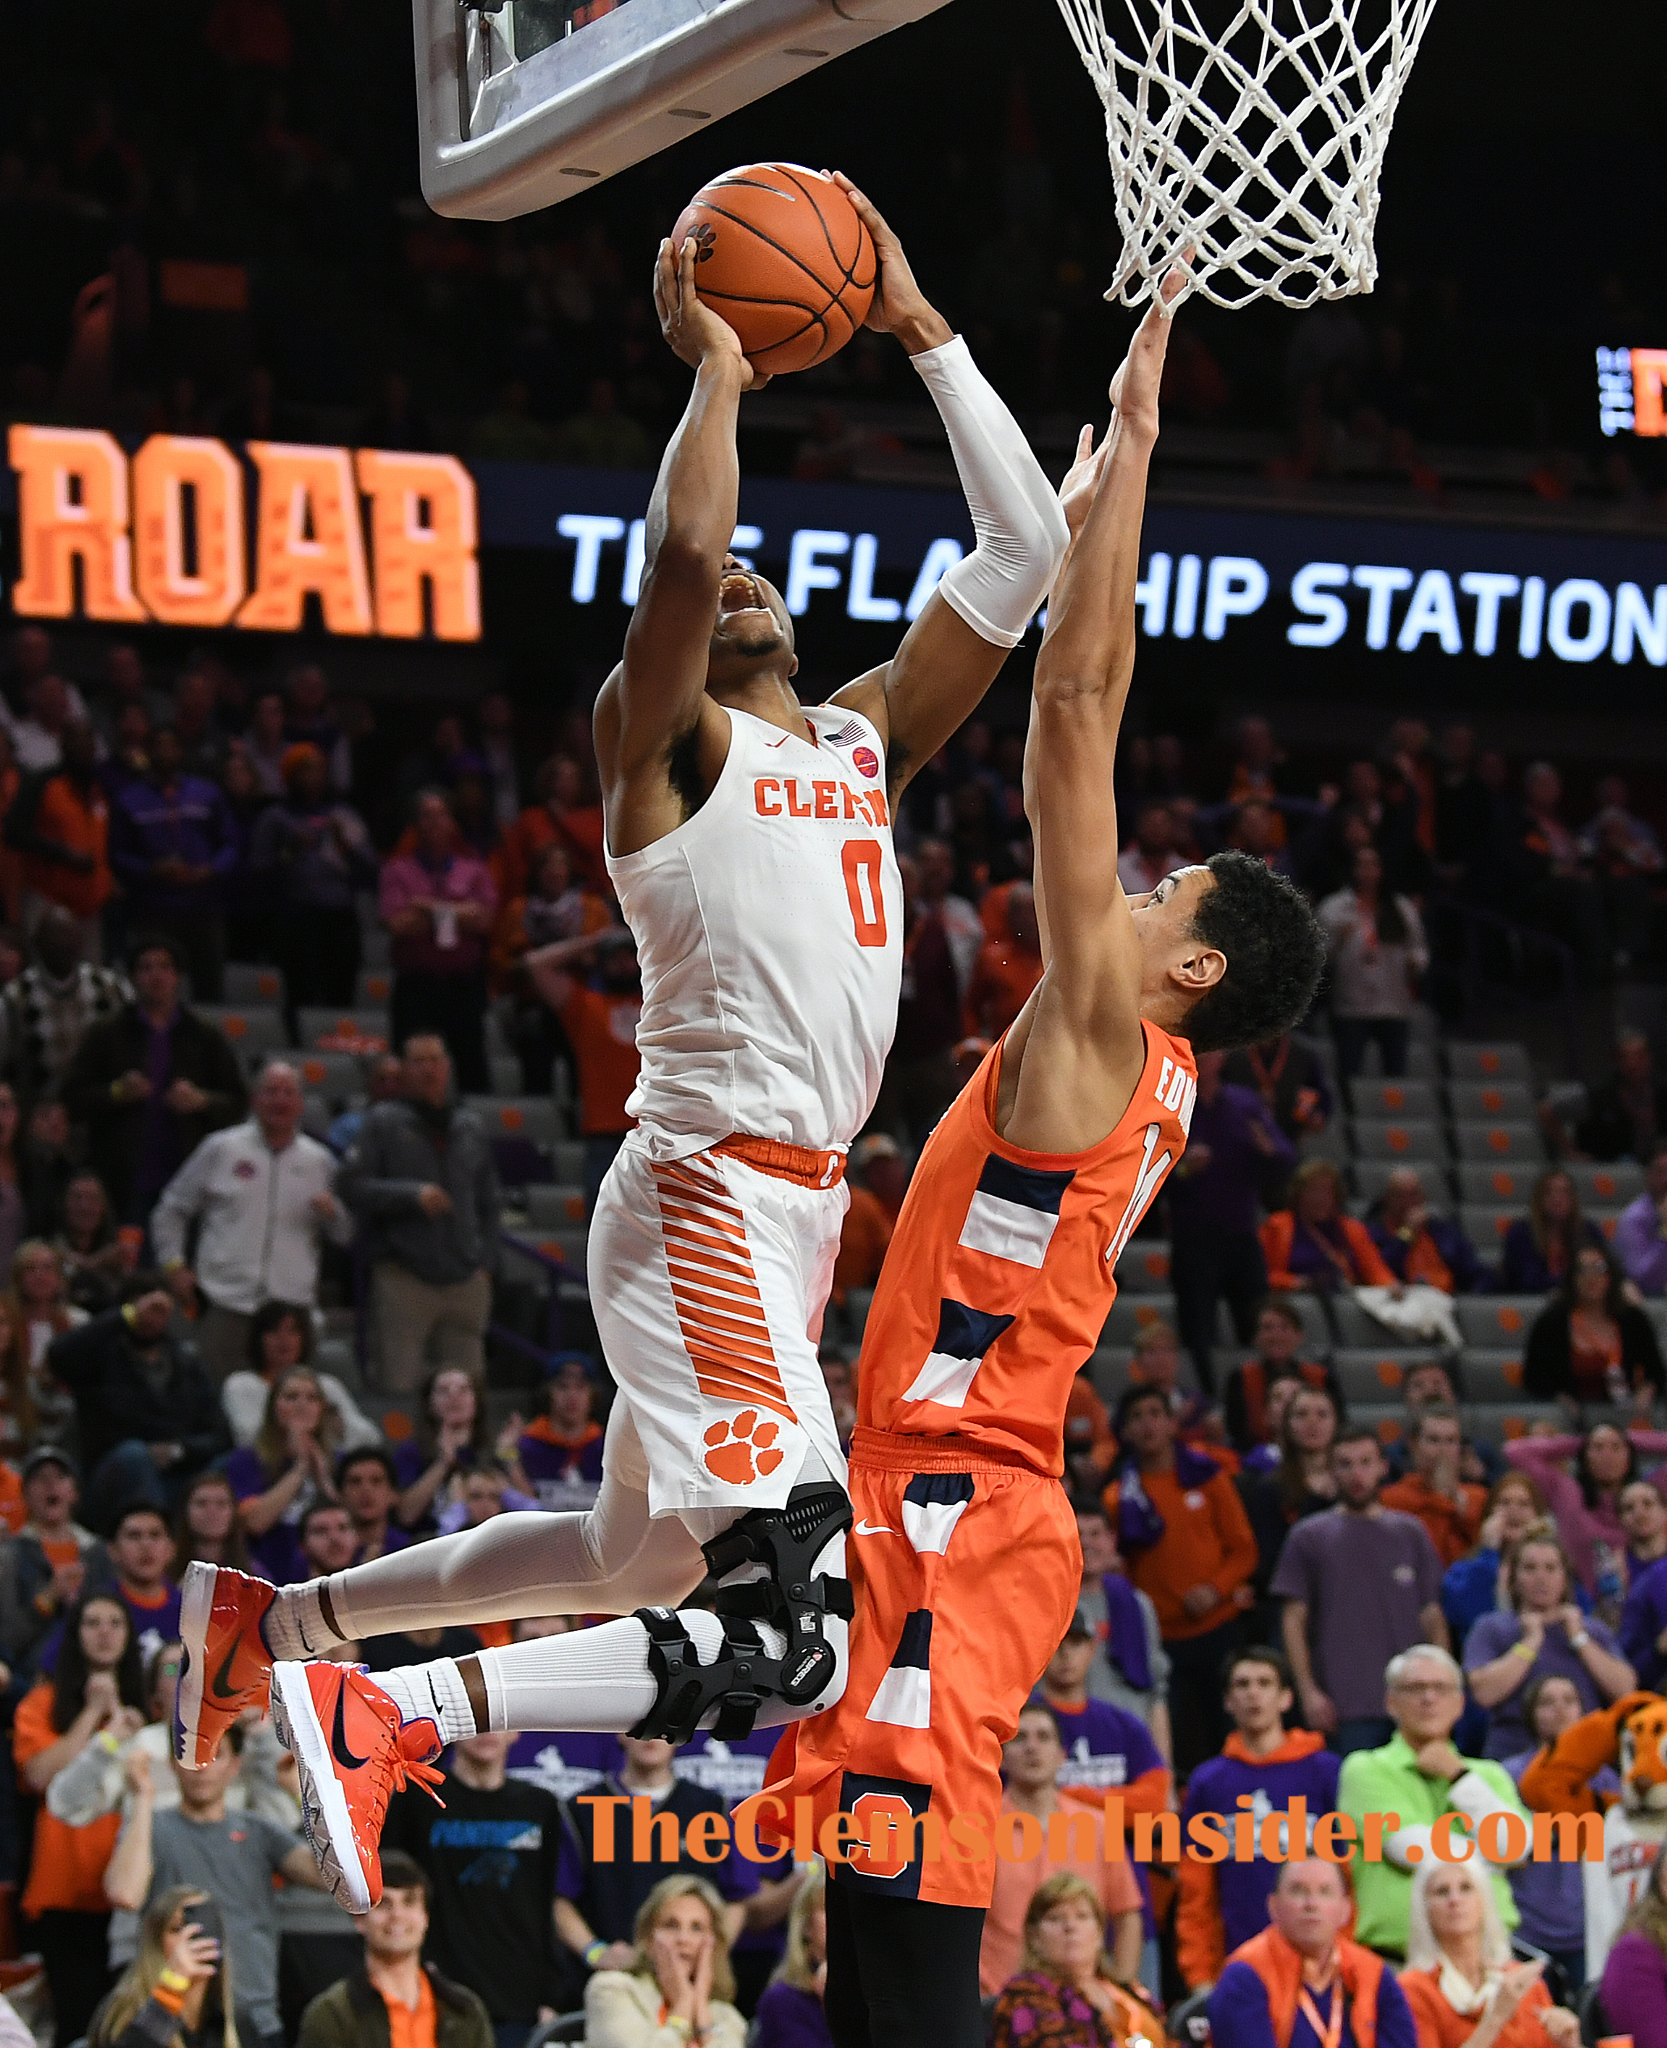 Clemson guard Clyde Trapp (0) scores the winning basket over Syracuse center Jesse Edwards (14) Tuesday, January 28, 2020 at Clemson's Littlejohn Coliseum. Bart Boatwright/The Clemson Insider